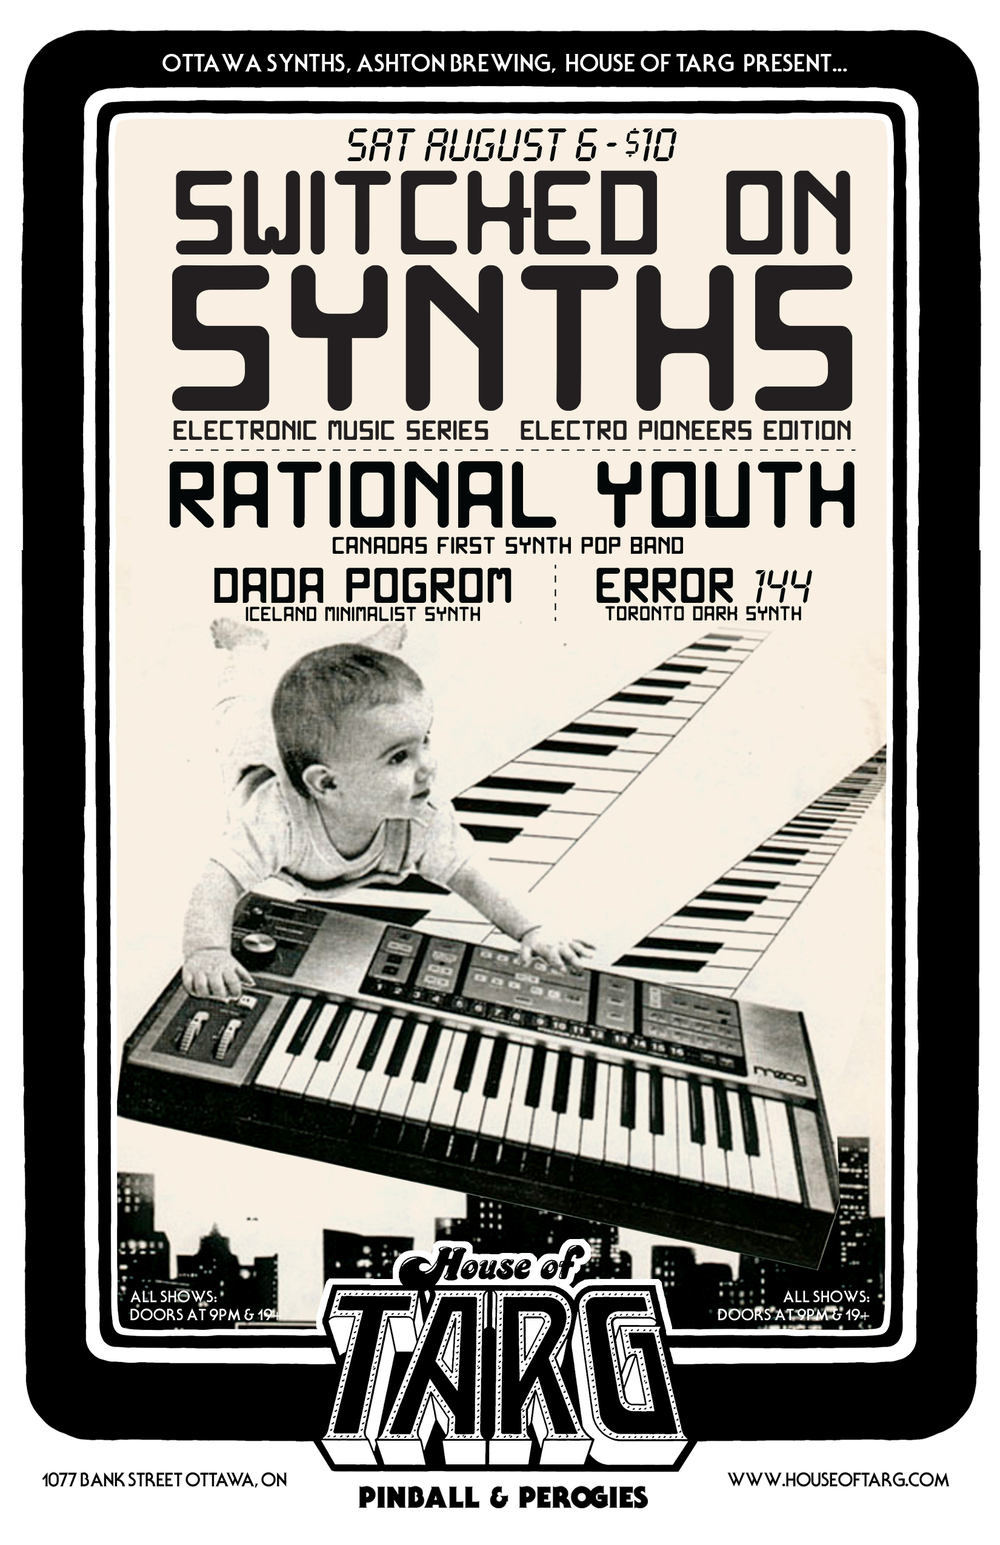 Electro Pioneers Edition featuring Canada's 1st Synth Pop Band RATIONAL YOUTH.  MORE INFO HERE